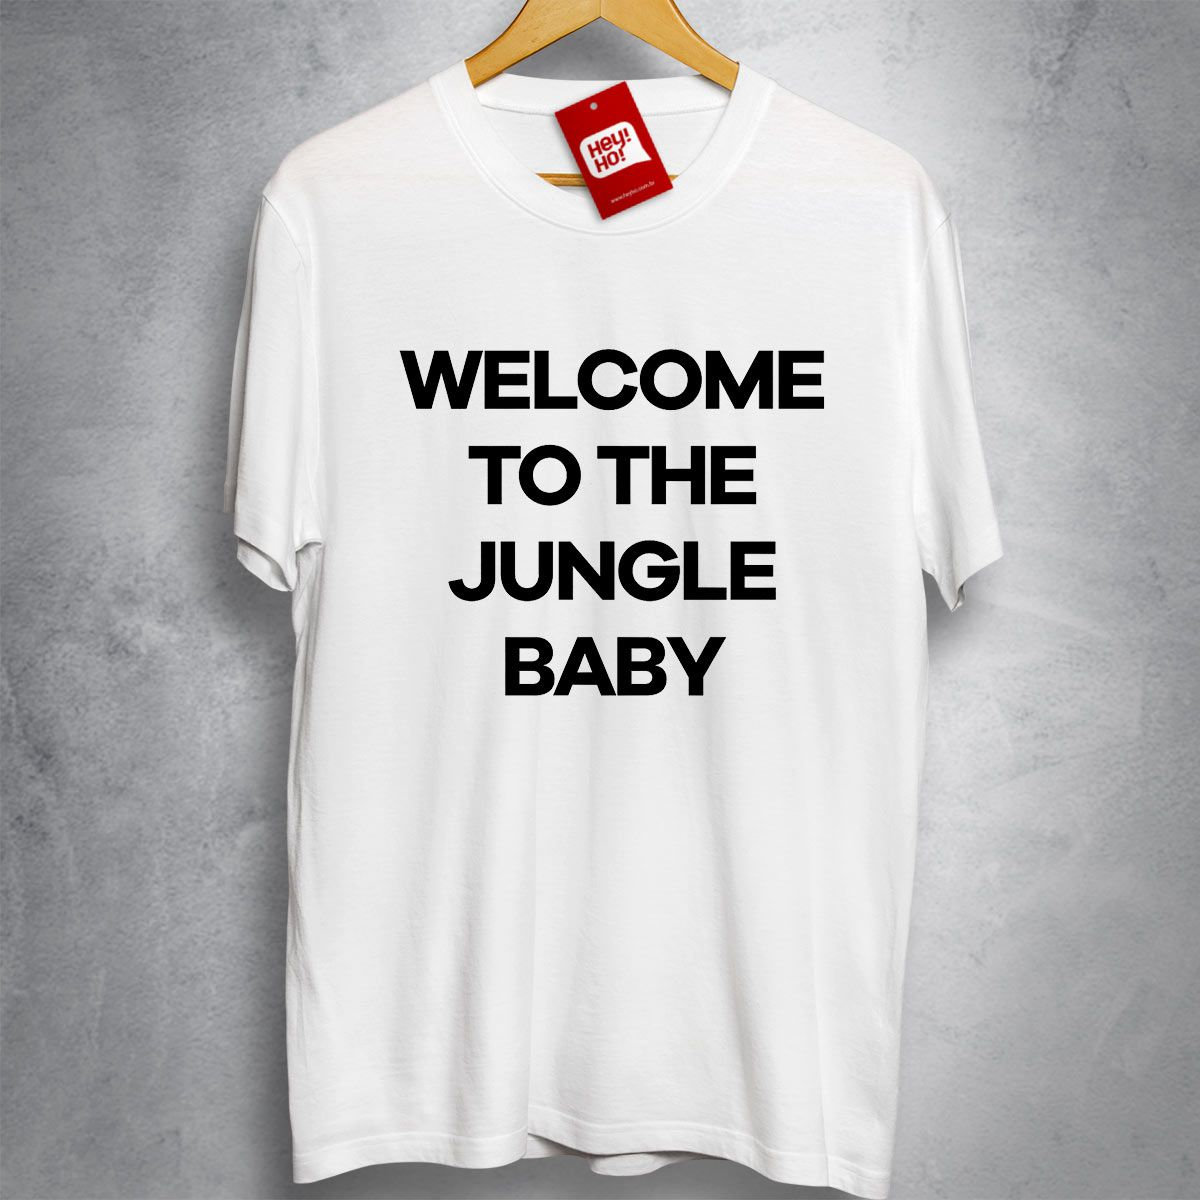 GUNS N' ROSES - Welcome to the jungle baby